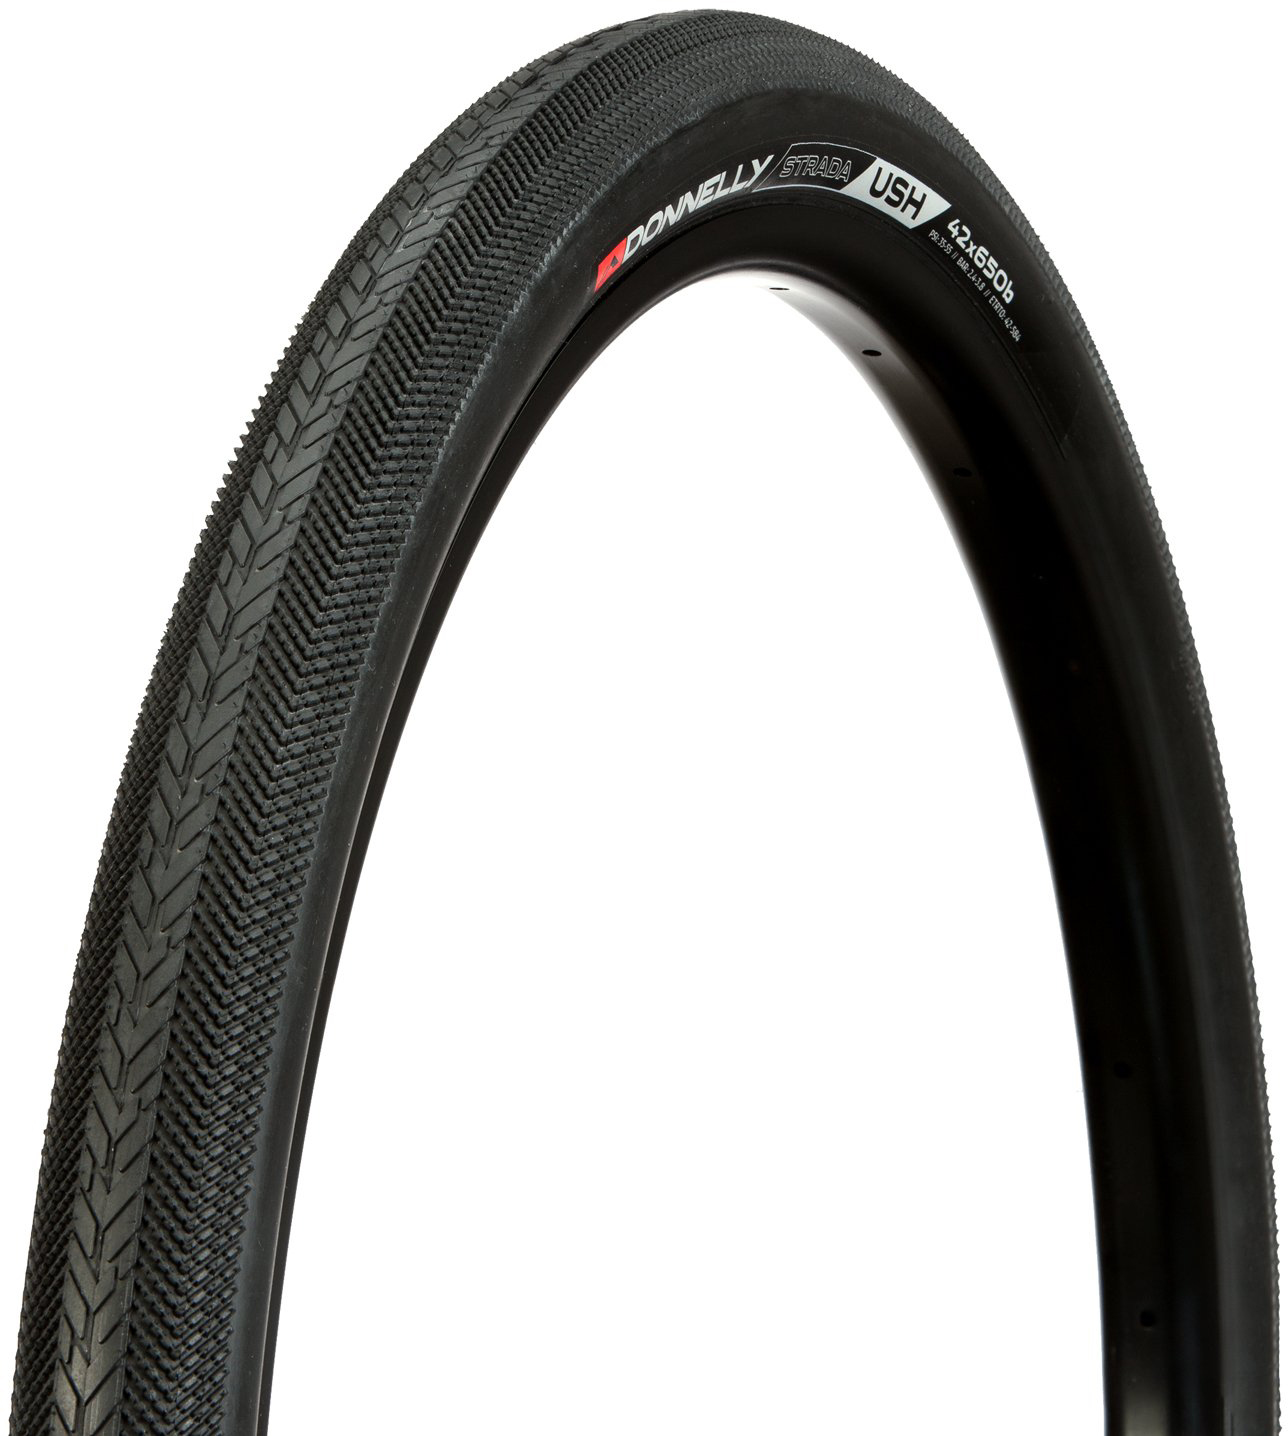 Donnelly Strada USH 60TPI SC Adventure Wire Bead Tyre | Tyres